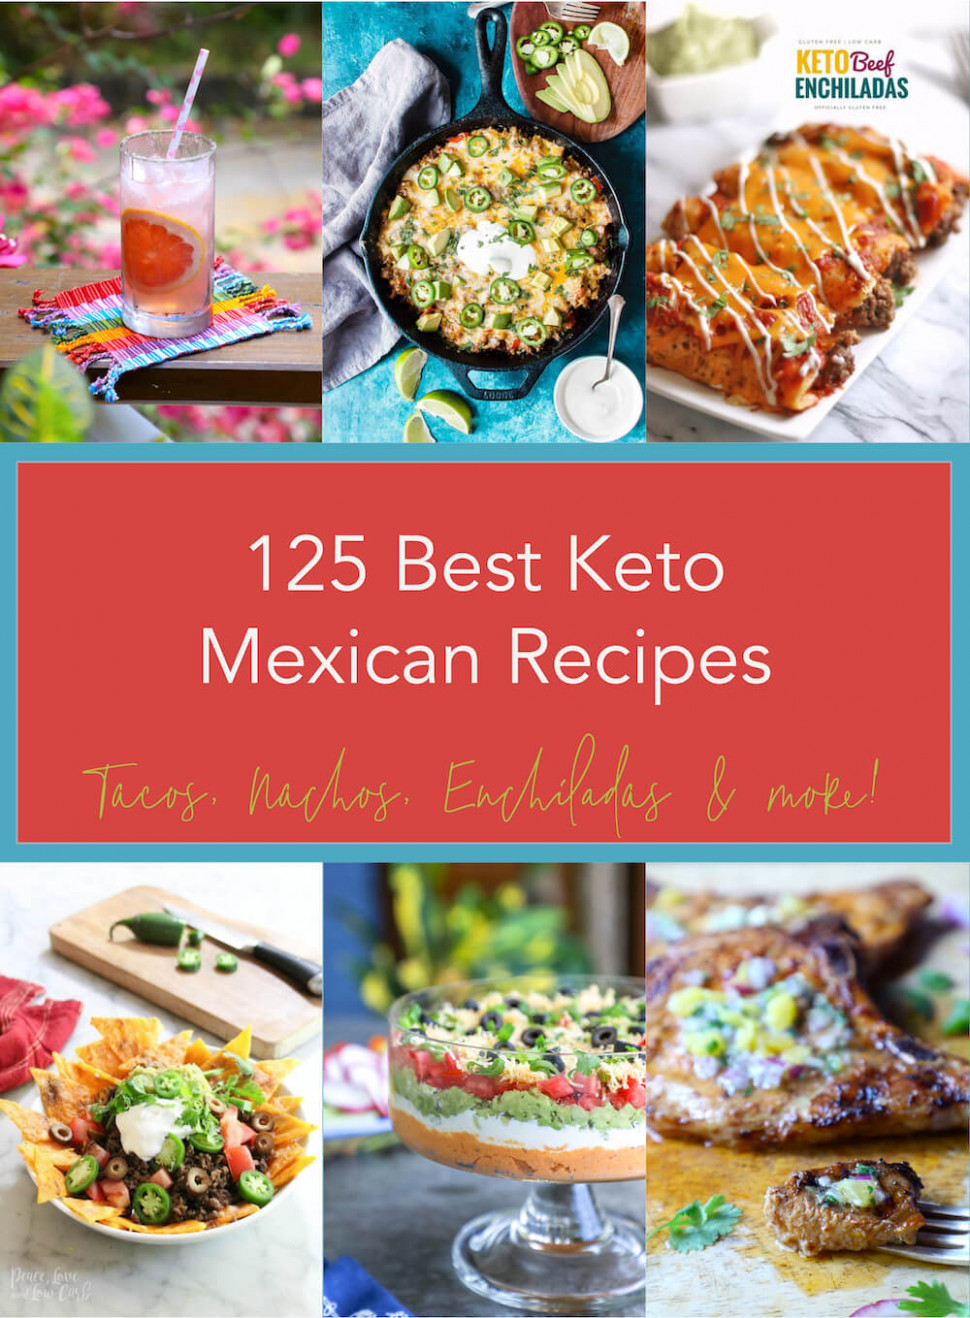 10 Best Keto Mexican Recipes - Low Carb | I Breathe I'm Hungry - Best Keto Recipes Dinner